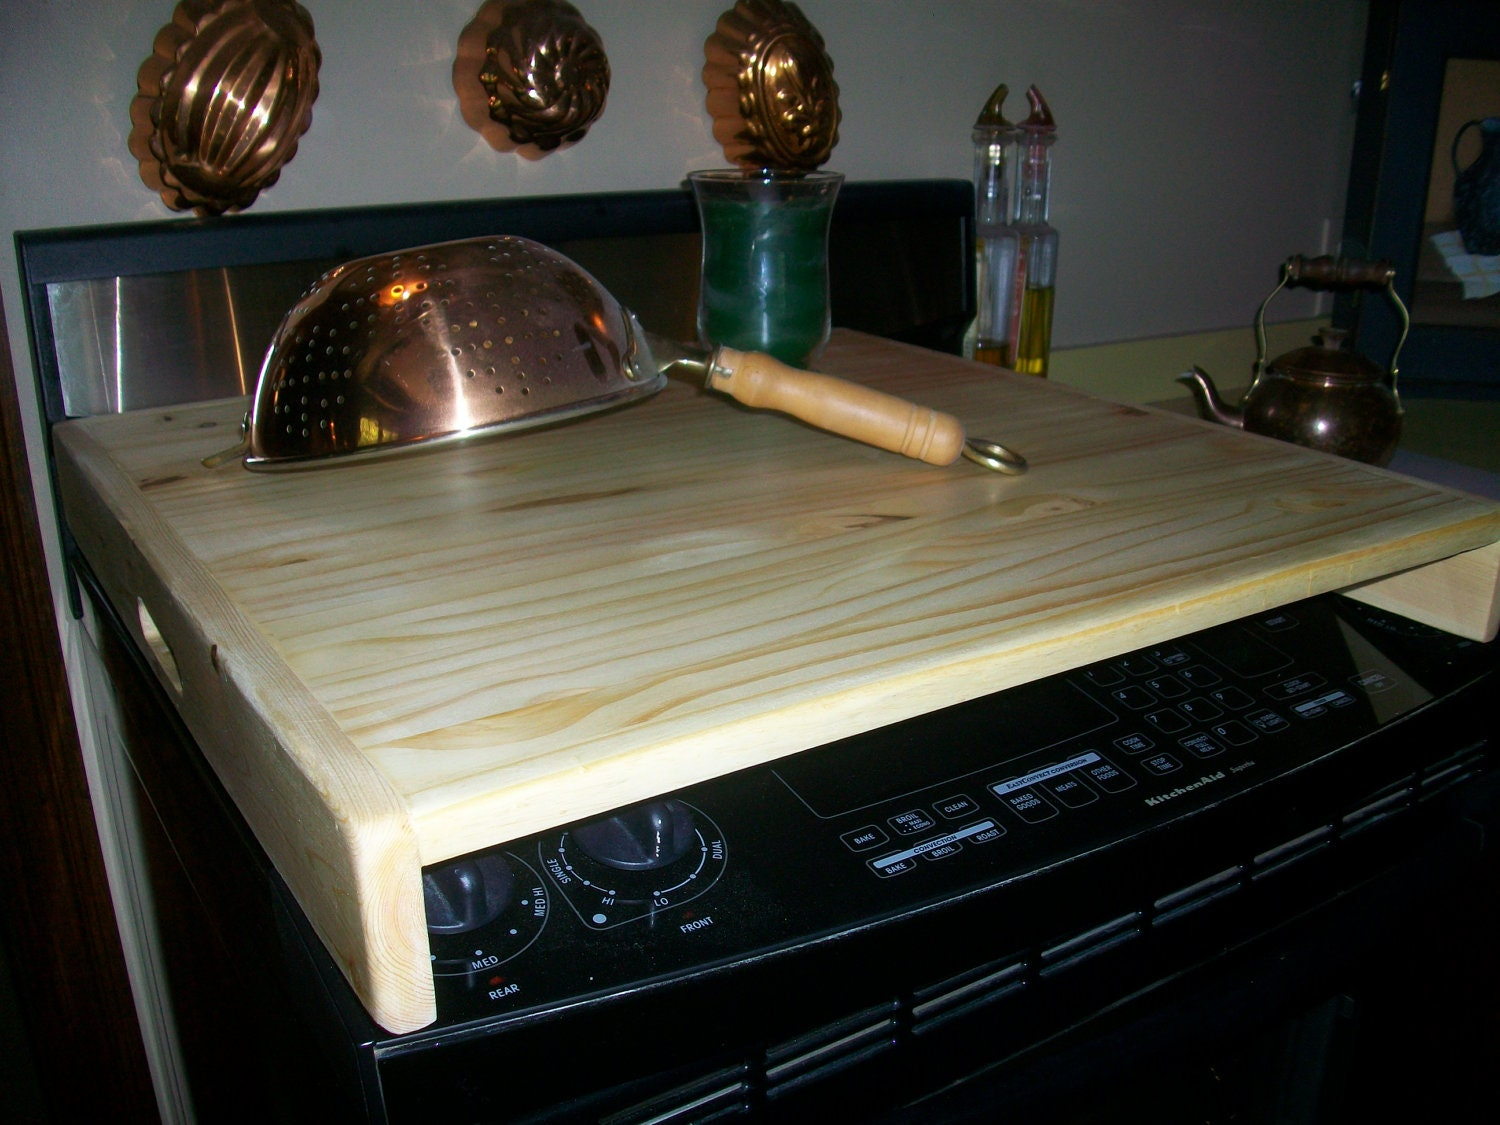 Rv+Electric+Stove+Top Sleek wood Stove Top Cover Board or RV Burner by ...